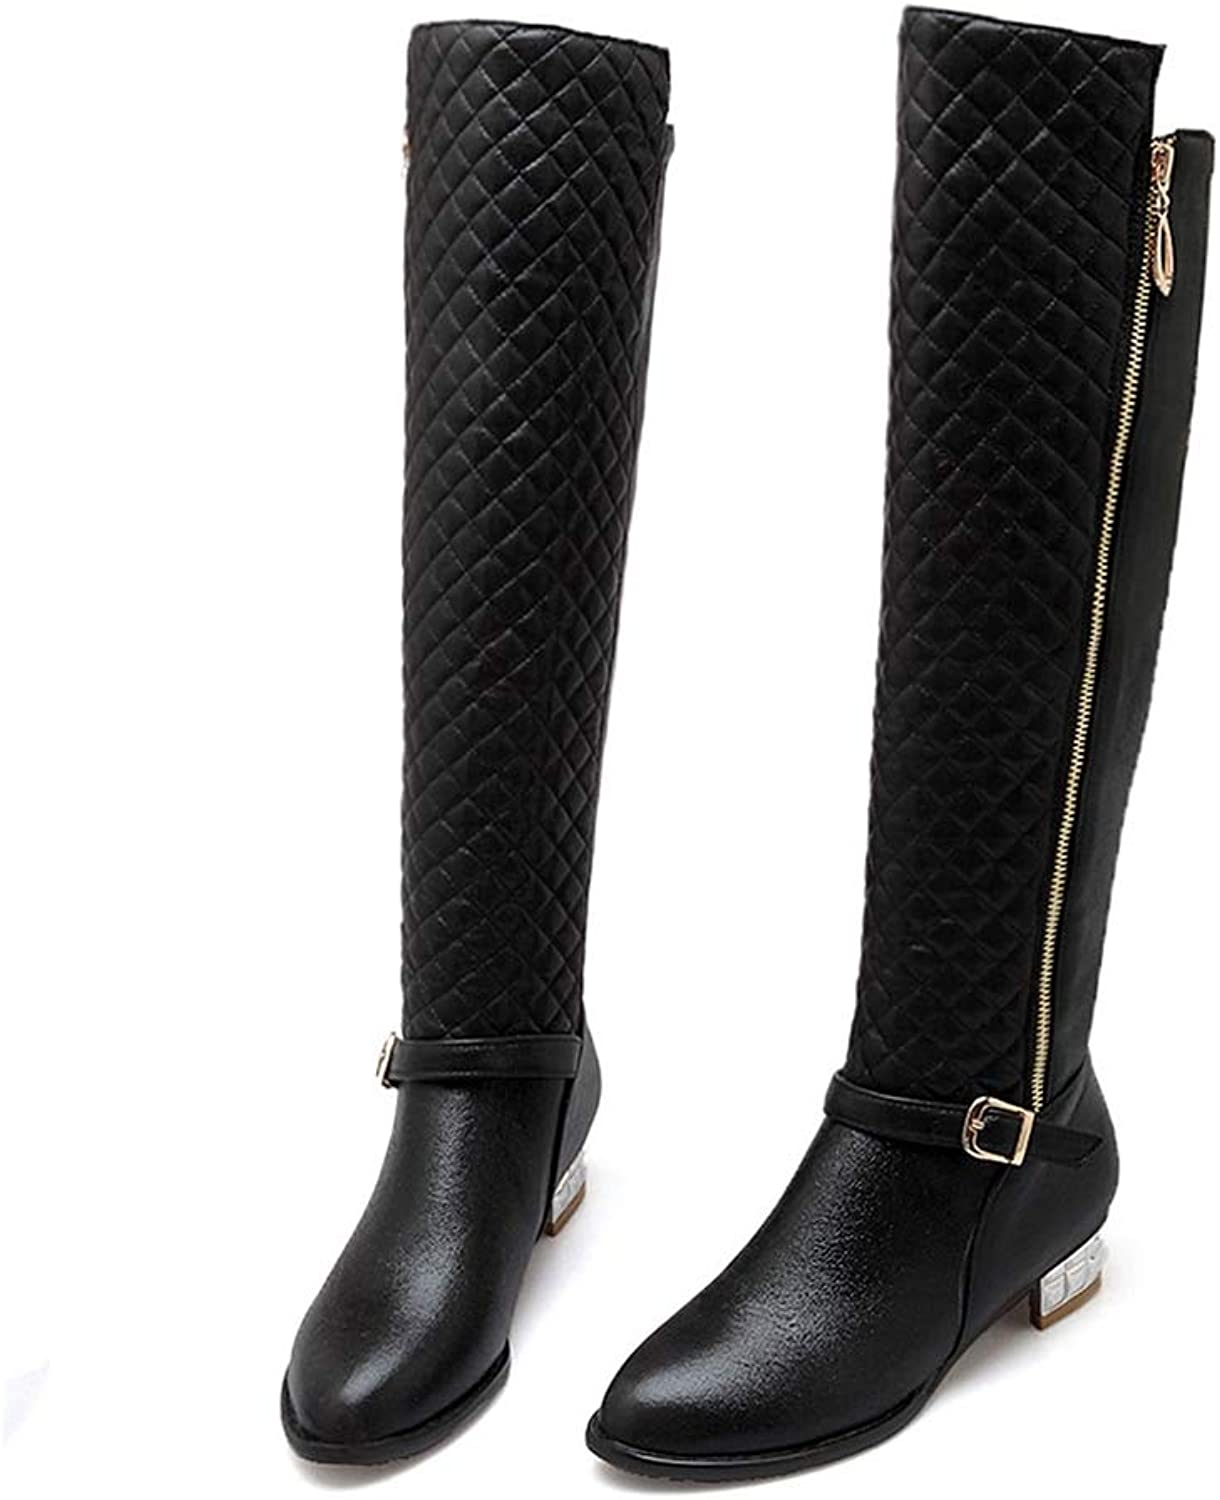 Hoxekle Winter Women Boots Fashion Round Toe Silver Low Heel shoes Solid PU Buckle Zipper Over-The-Knee Boots